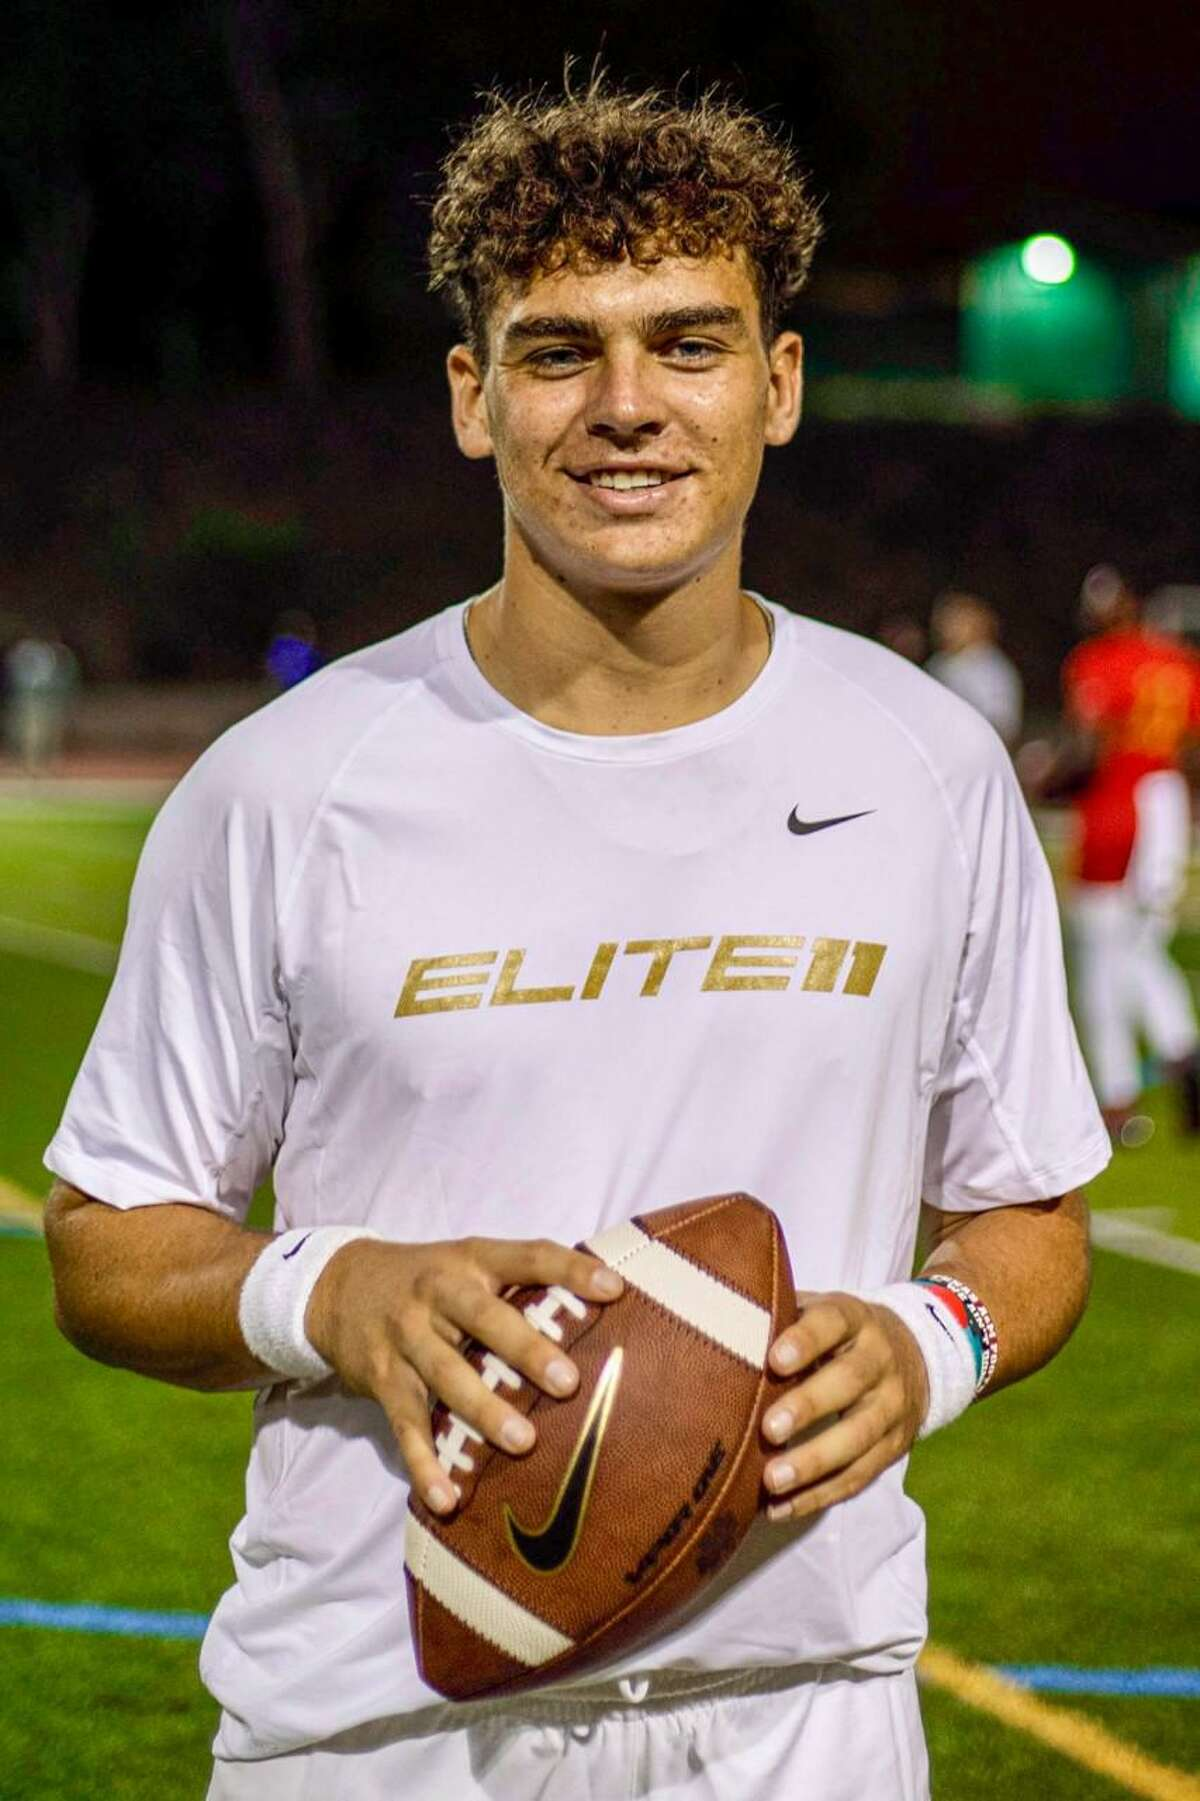 Bridgeland High School senior Conner Weigman was named to the 2021 Elite 11, becoming just the sixth Houston-area football standout to earn the prestigious honor.